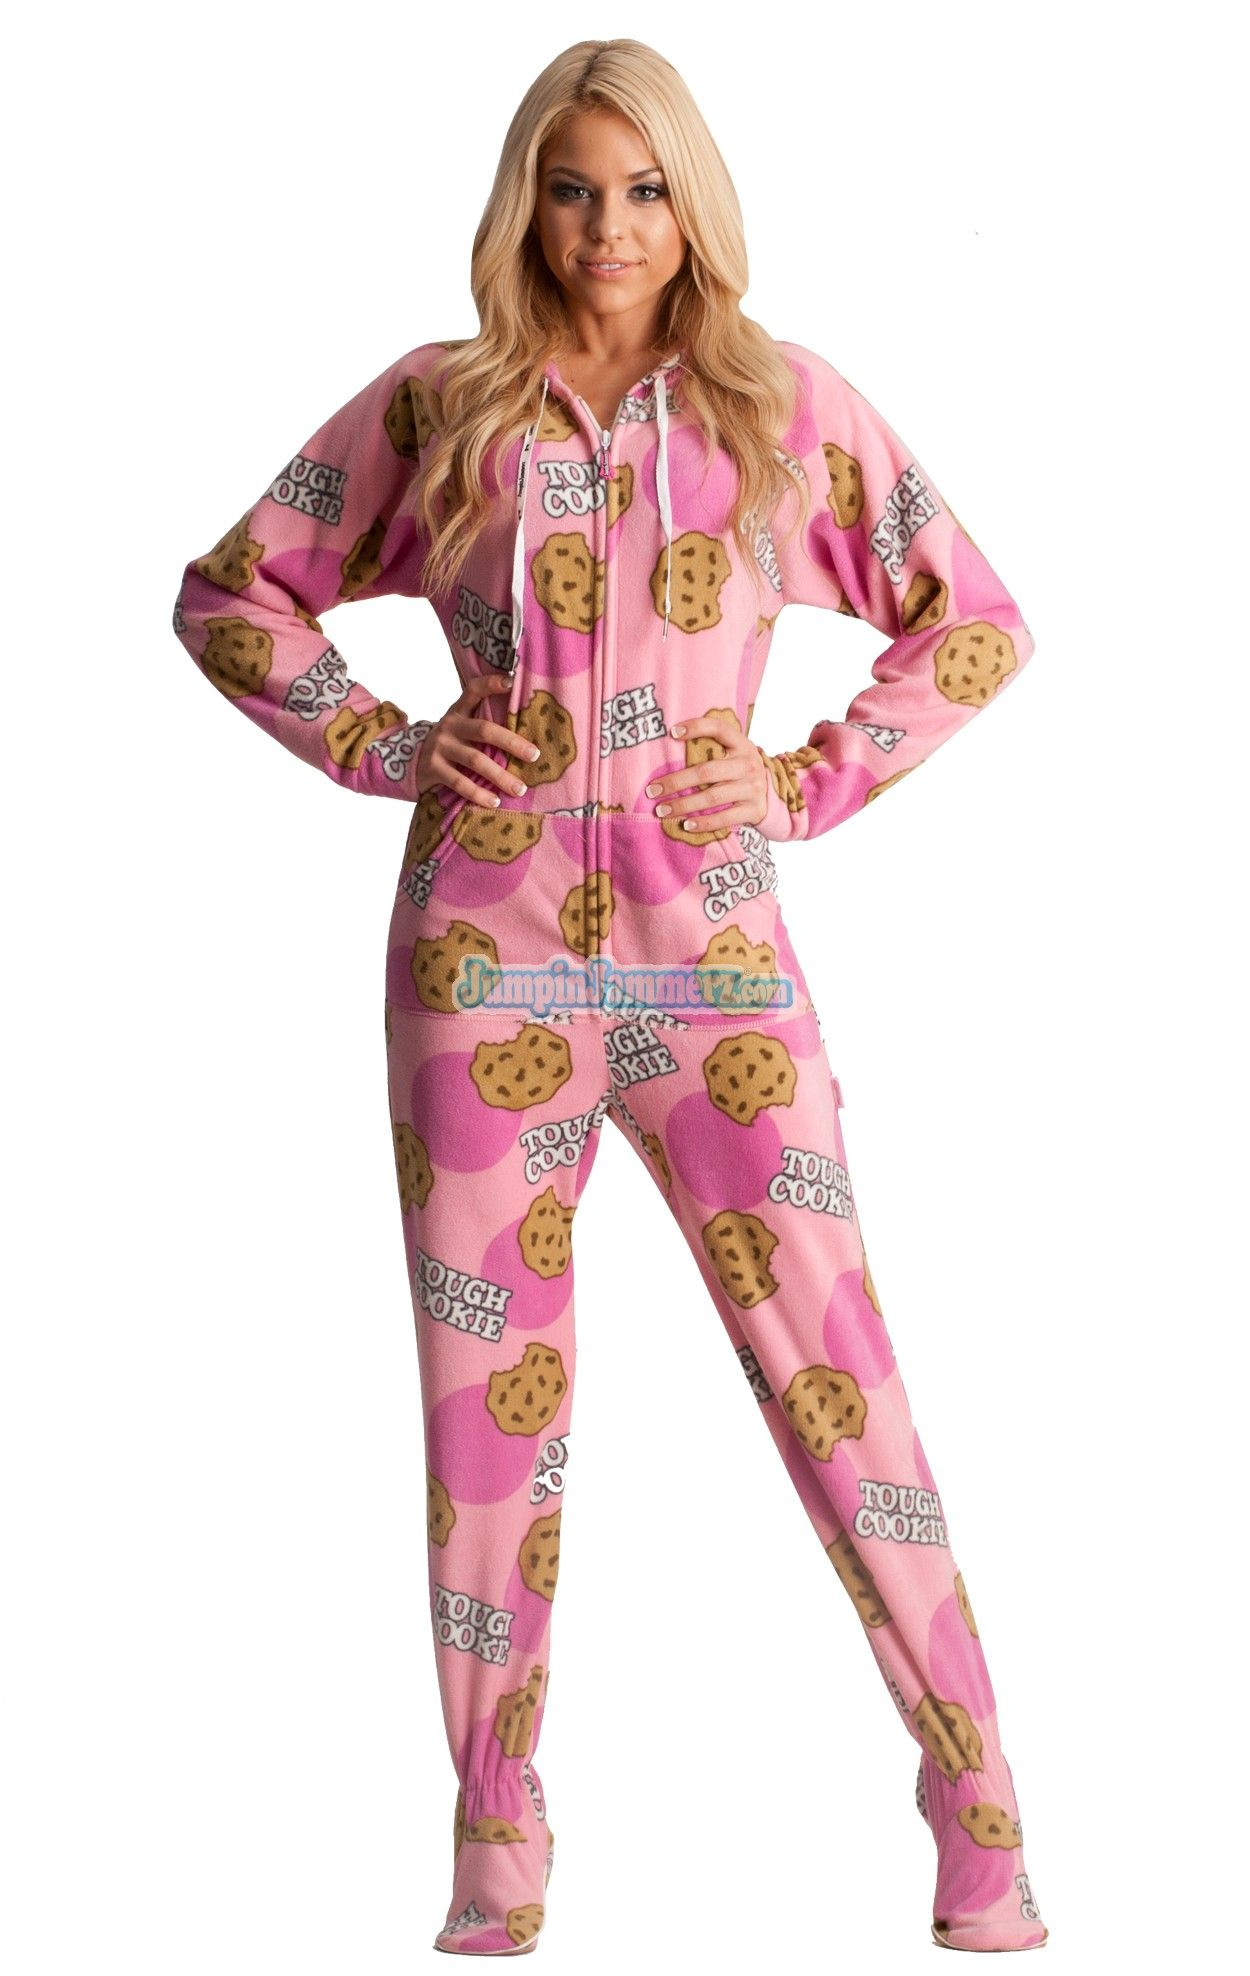 b648bc5a13c1 Tough Cookie Hooded Adult Pajamas. These fun one piece pjs feature a ...